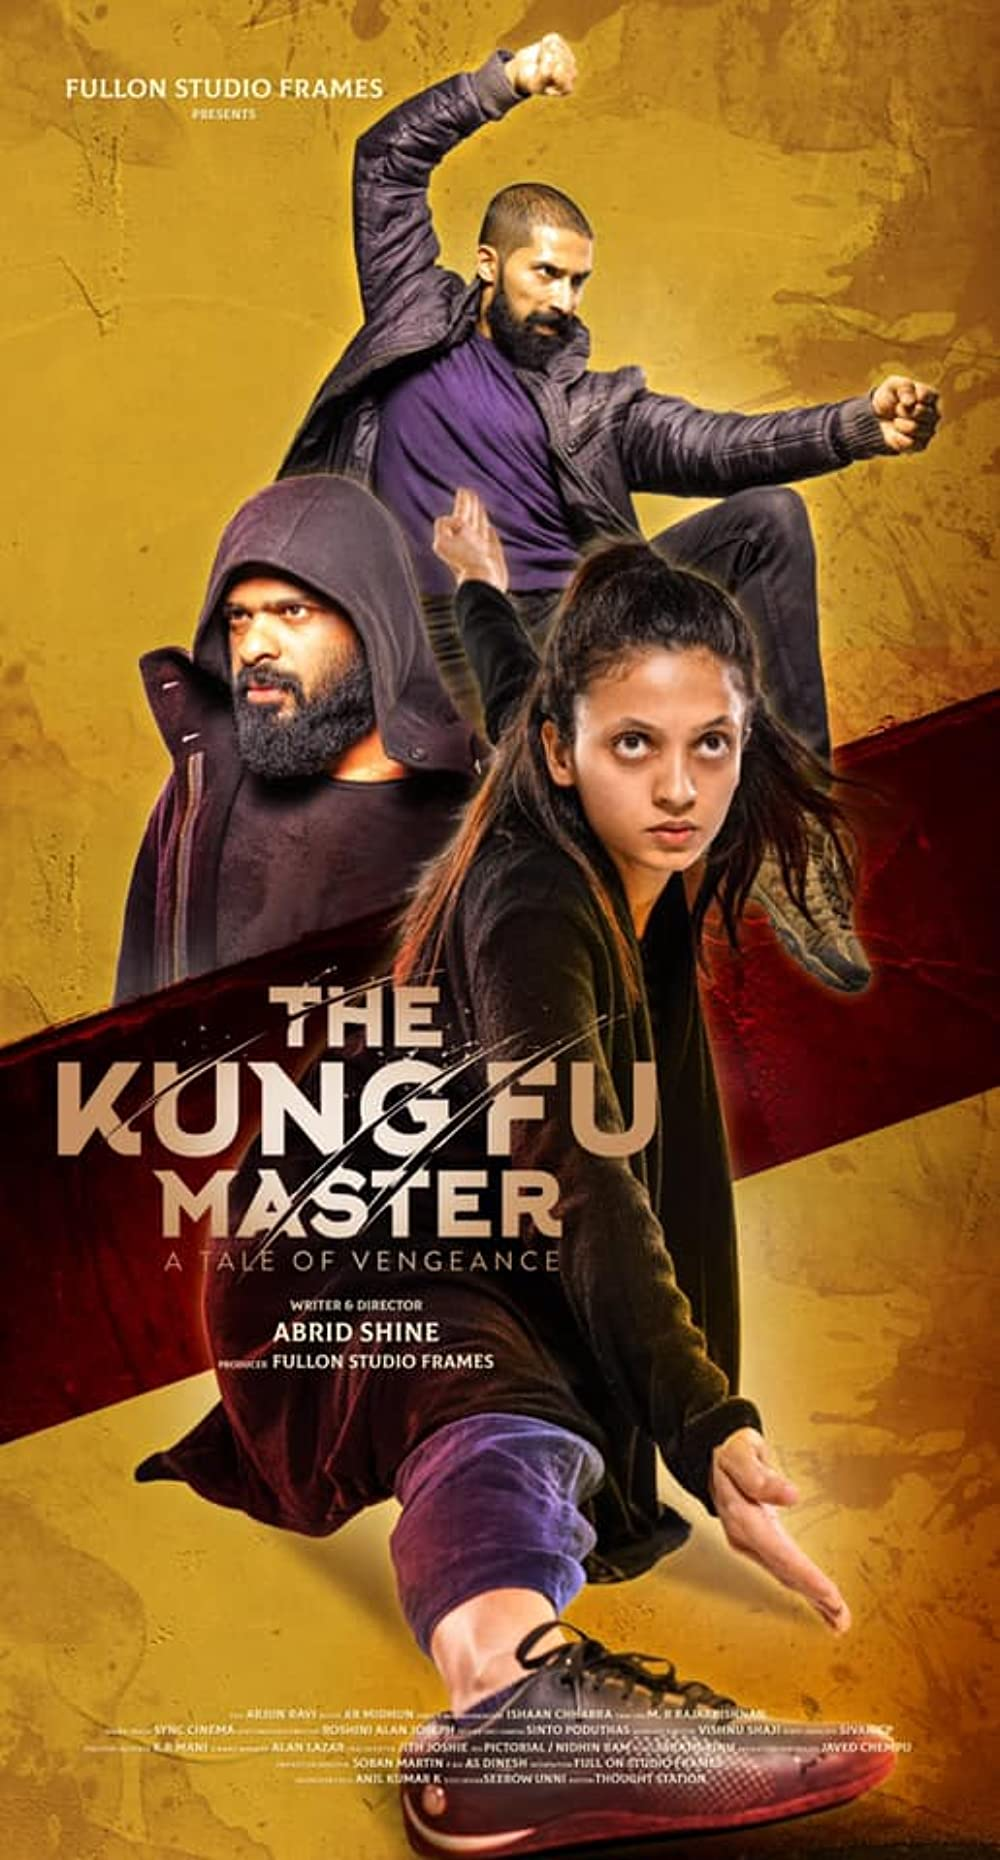 The Kung Fu Master 2020 Hindi Dual Audio 720p HDTVRip 800MB Free Download